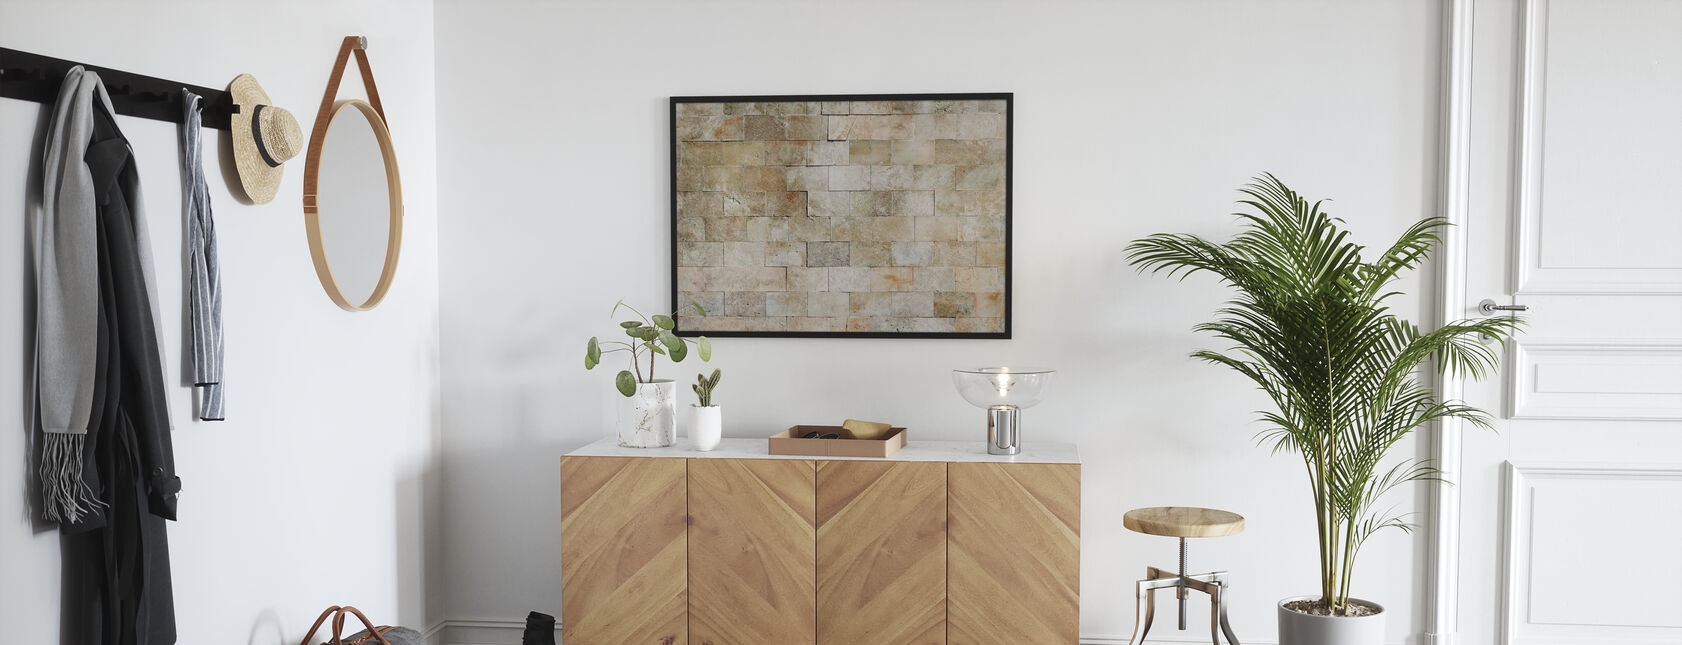 Tiled Stone Wall - Poster - Hallway